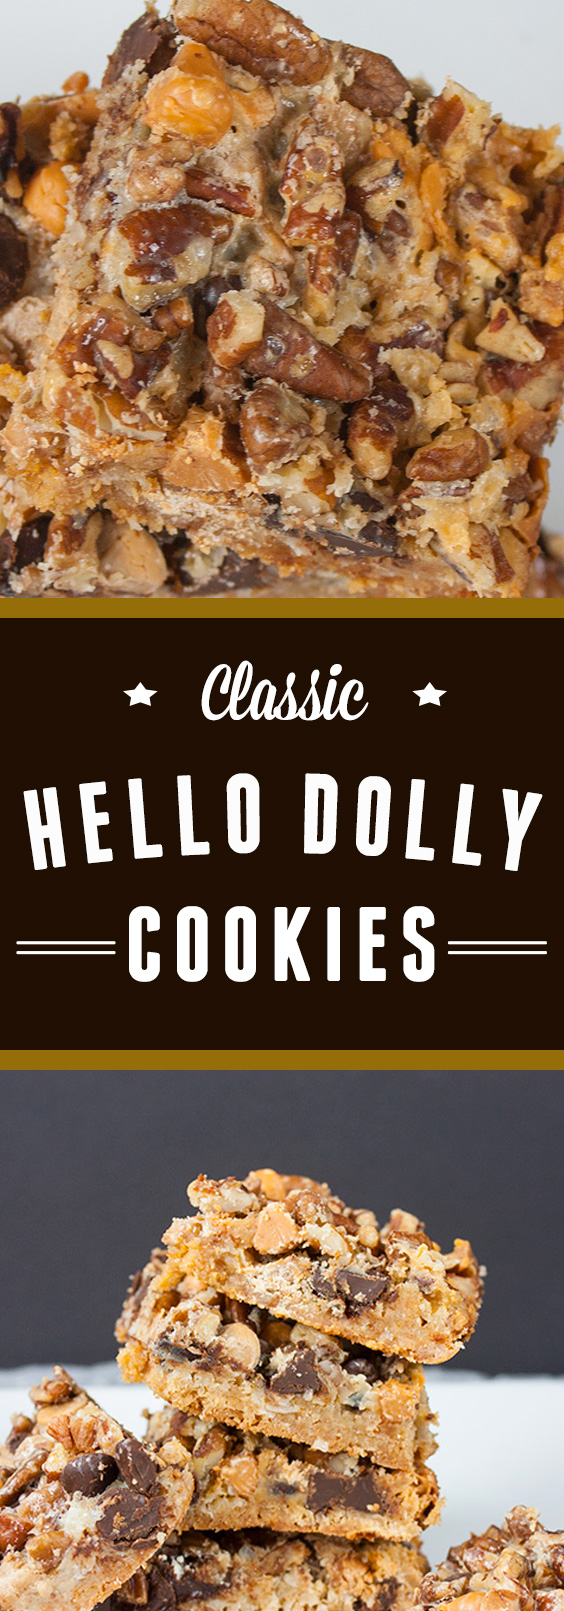 Classic Hello Dolly Cookies - Quick, easy and downright delicious! #cookies #sweets #baking #party #desserts #tailgate #tailgatefood #tailgateparty